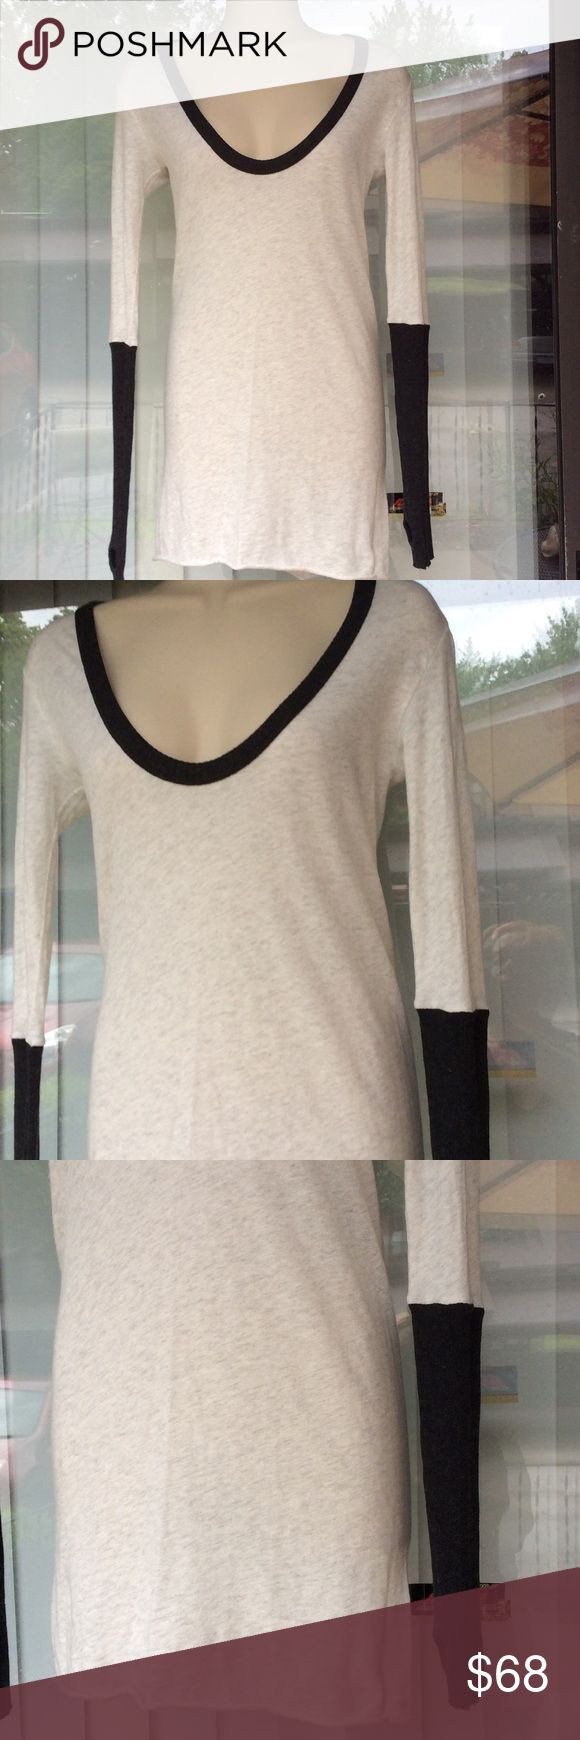 Enza Costa for Intermix designer top Very light and soft,wit thumb hole on sleeve ,worn once,cashmere and cotton Enza Costa Tops Tees - Long Sleeve